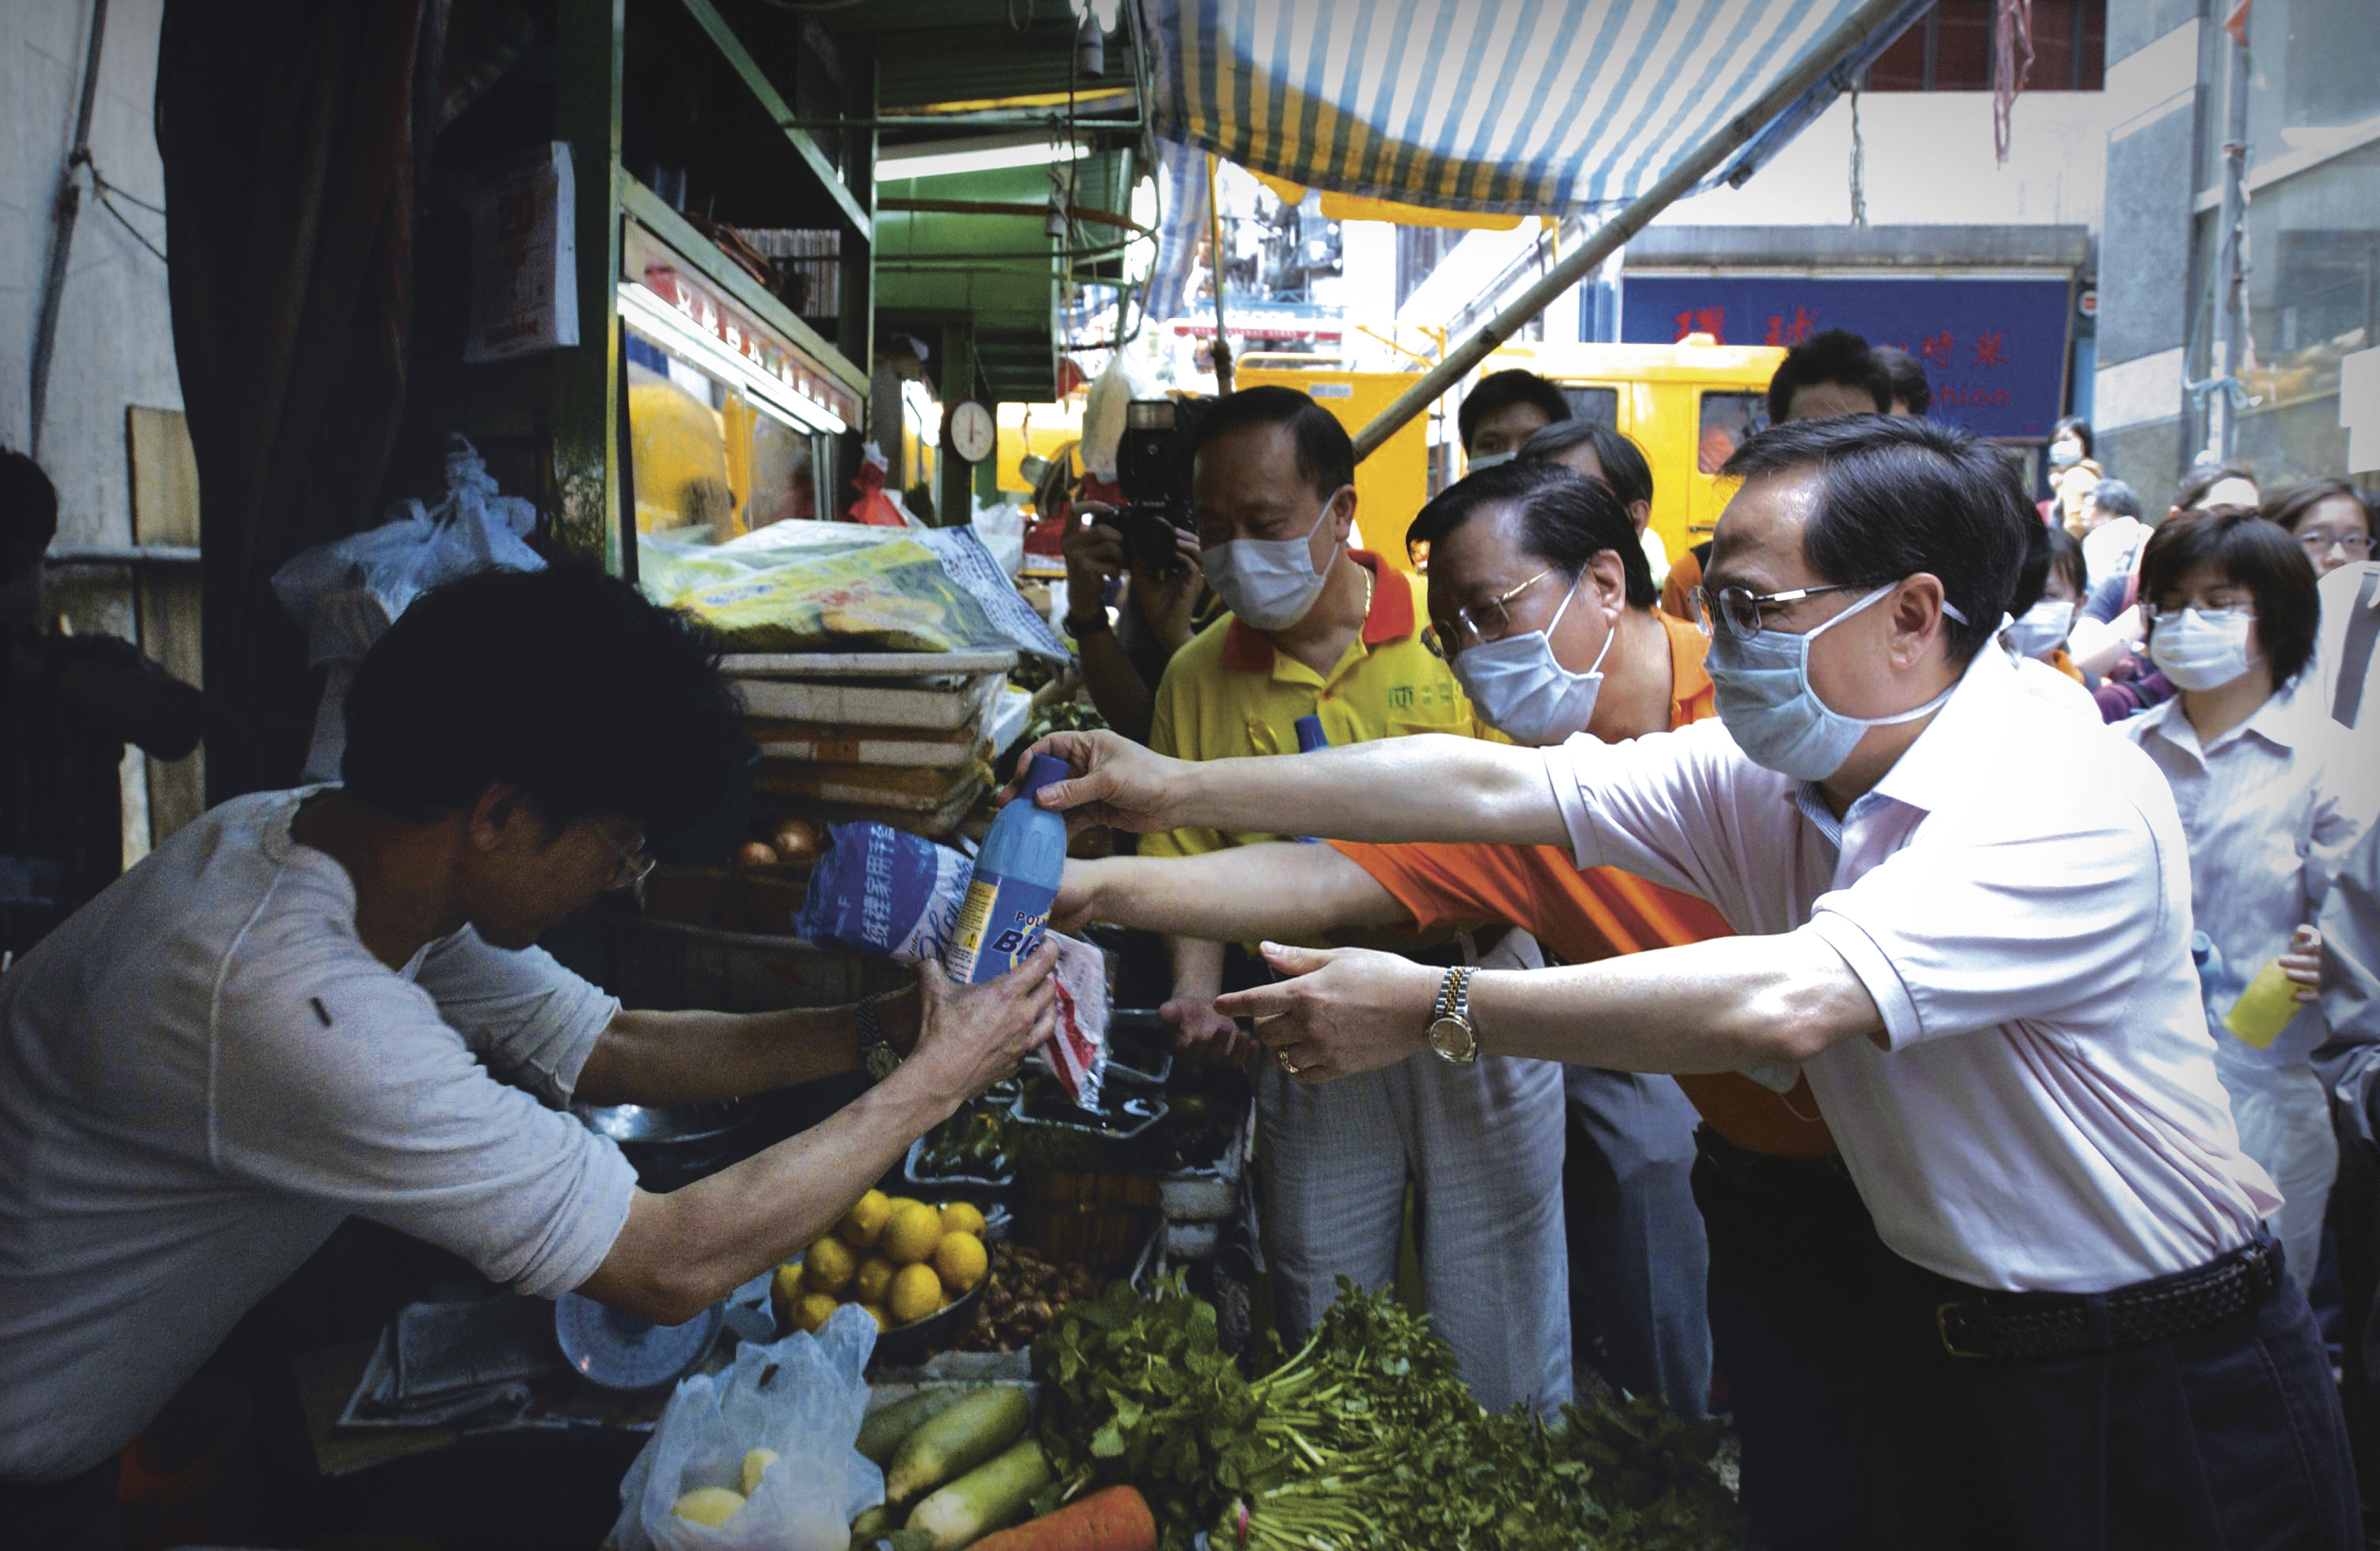 Donald Tsang, then Chief Secretary for Administration, visits the market